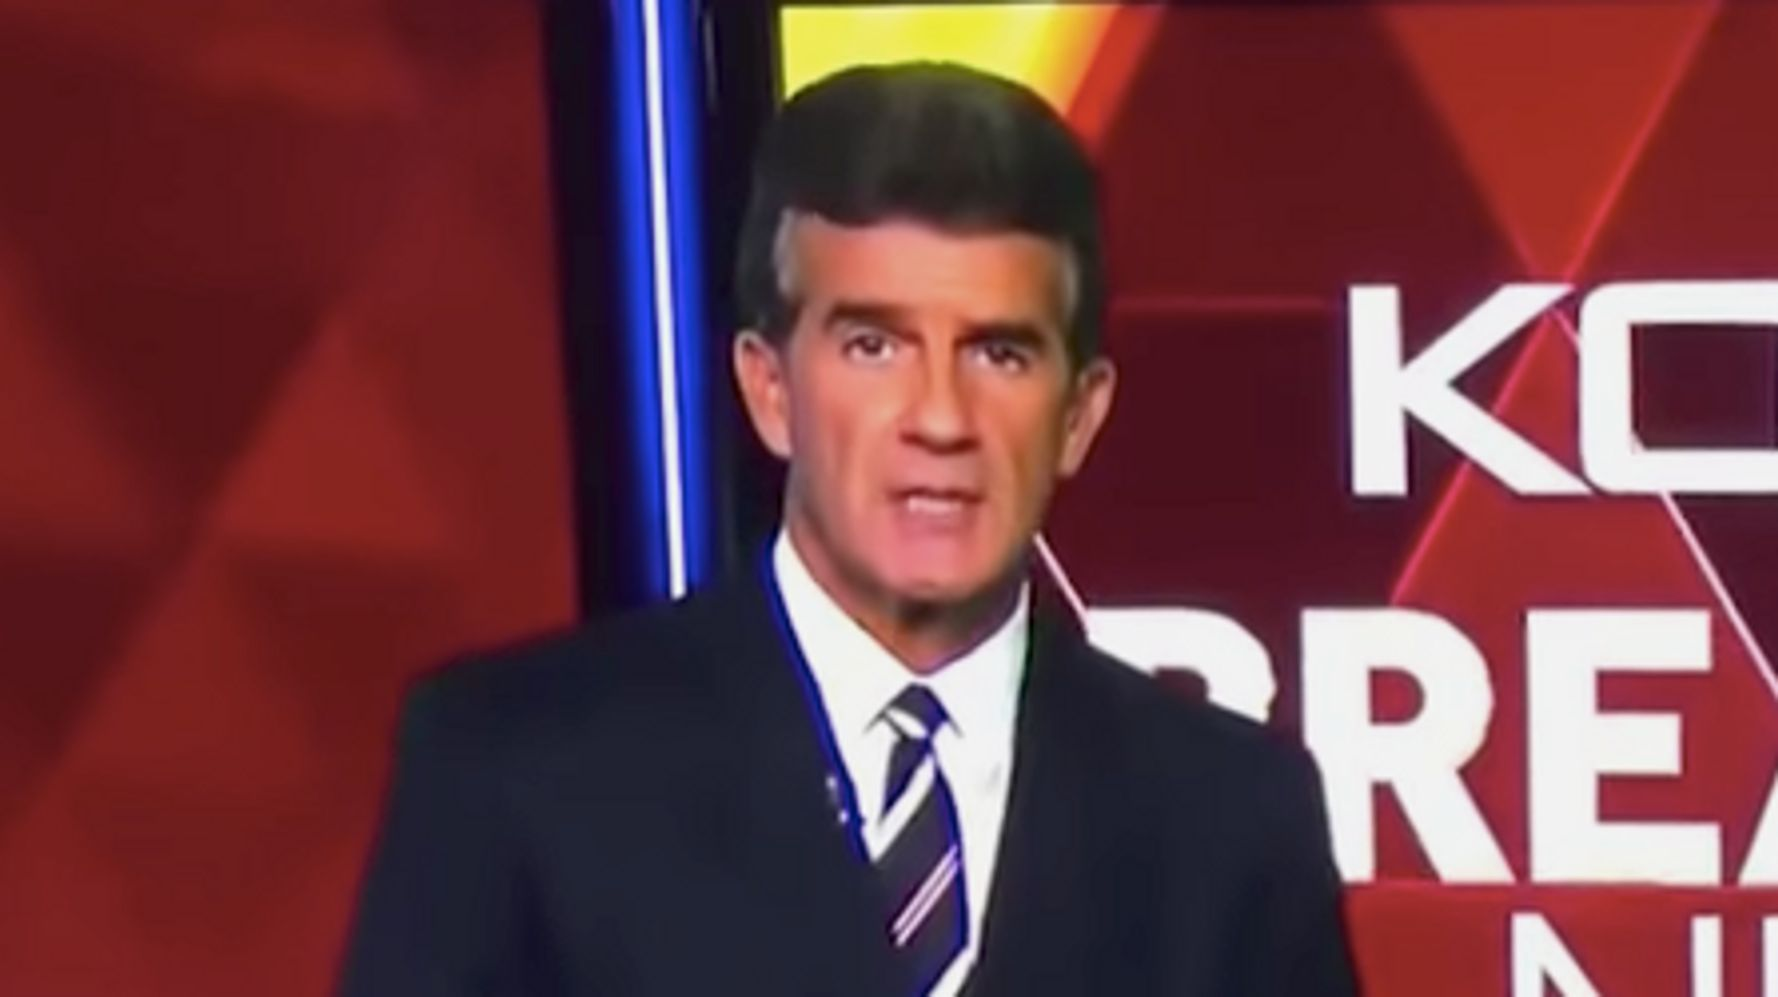 News Anchor Doug Fernandez Throws Up Papers In Disgust After Tech